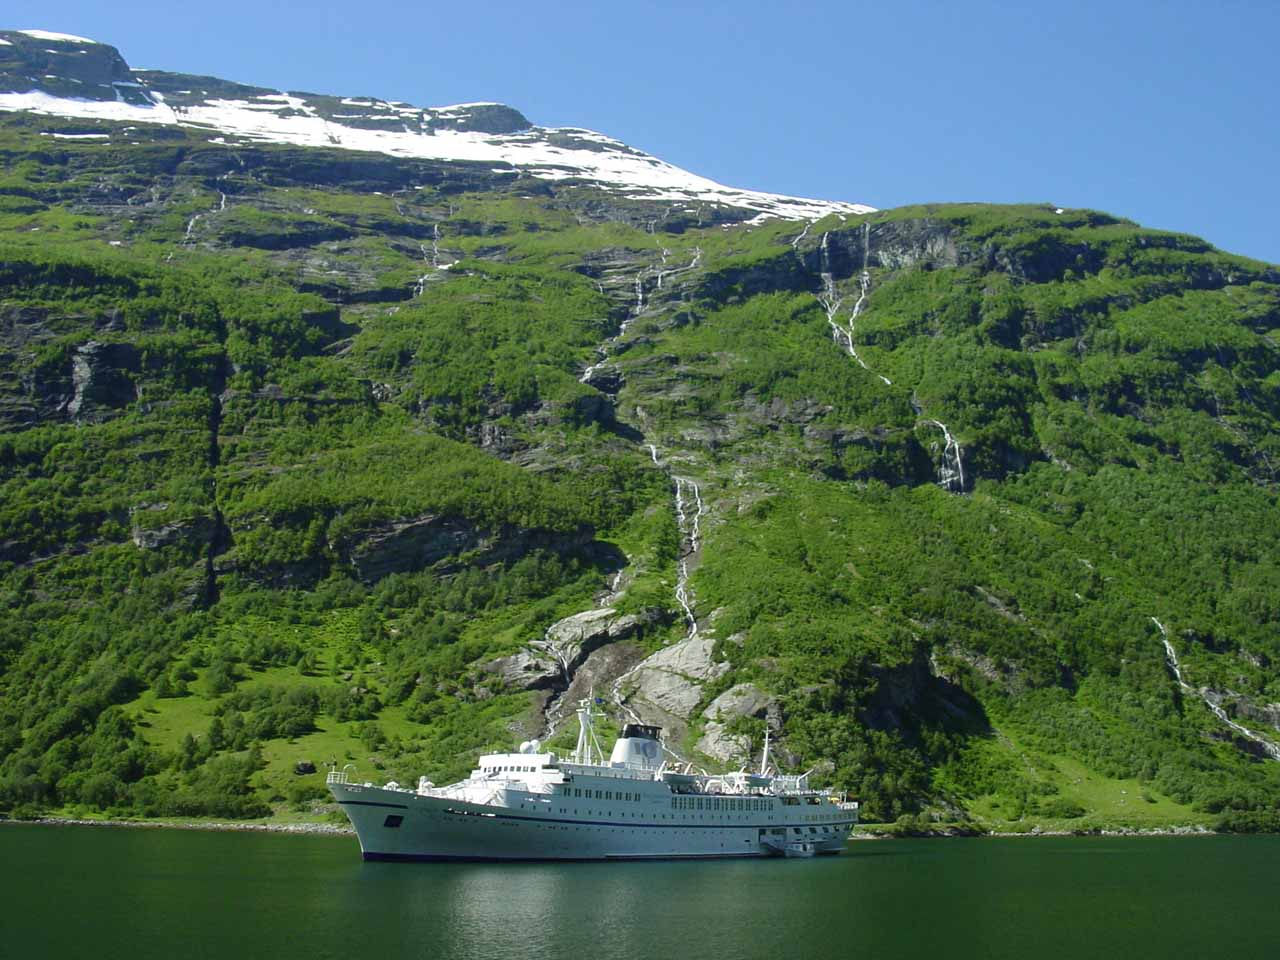 Many thin waterfalls seen tumbling behind one of the cruise ships on the Geirangerfjord